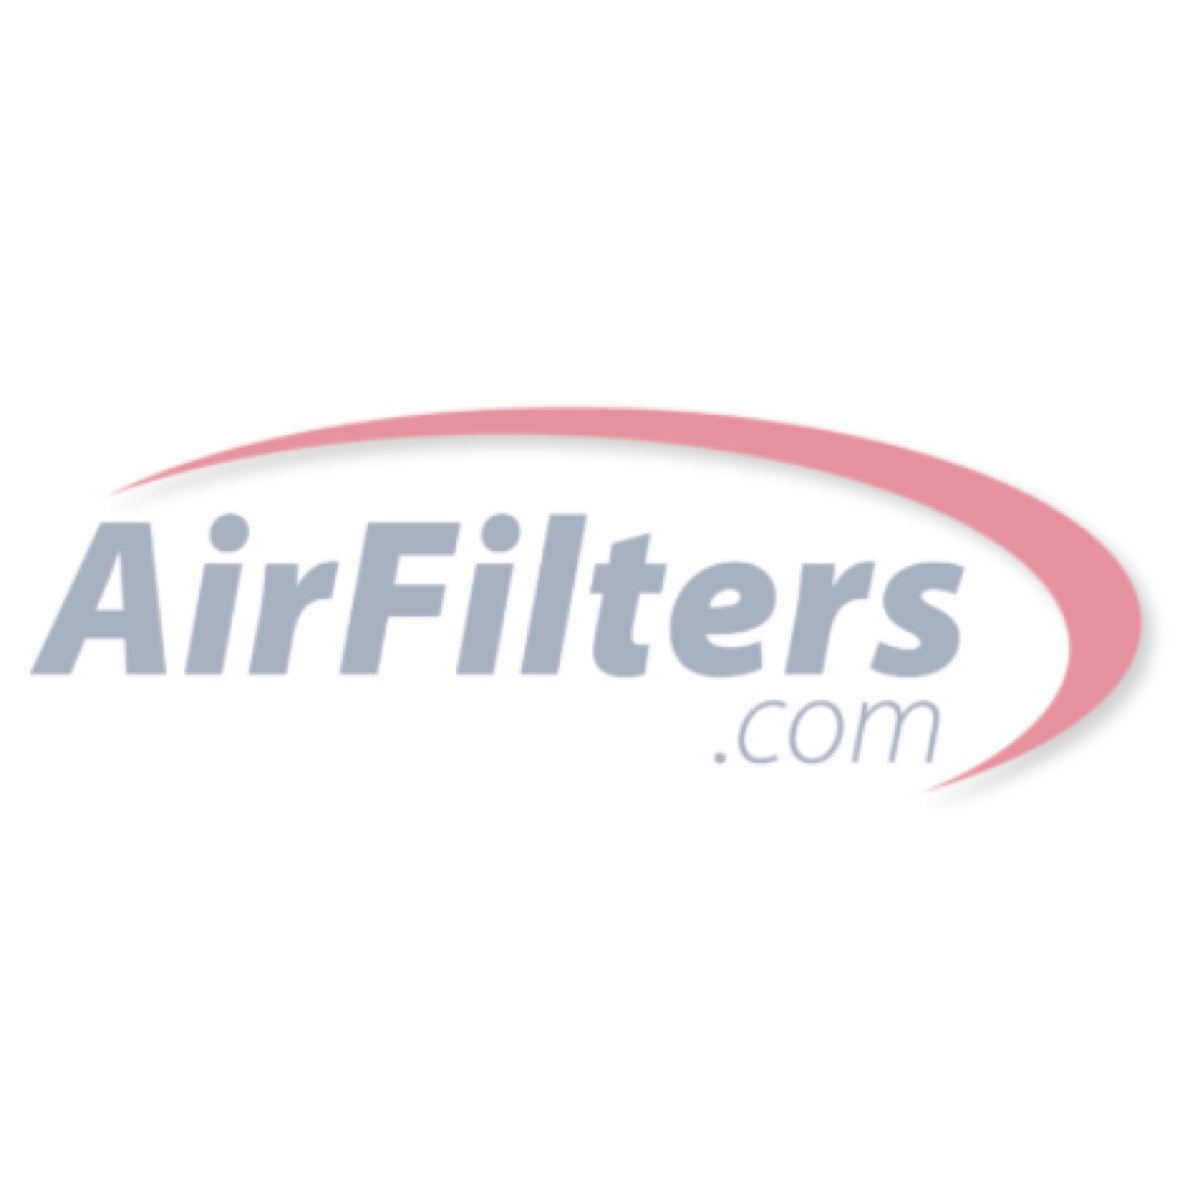 Electro Filter® Air Filters by Accumulair®